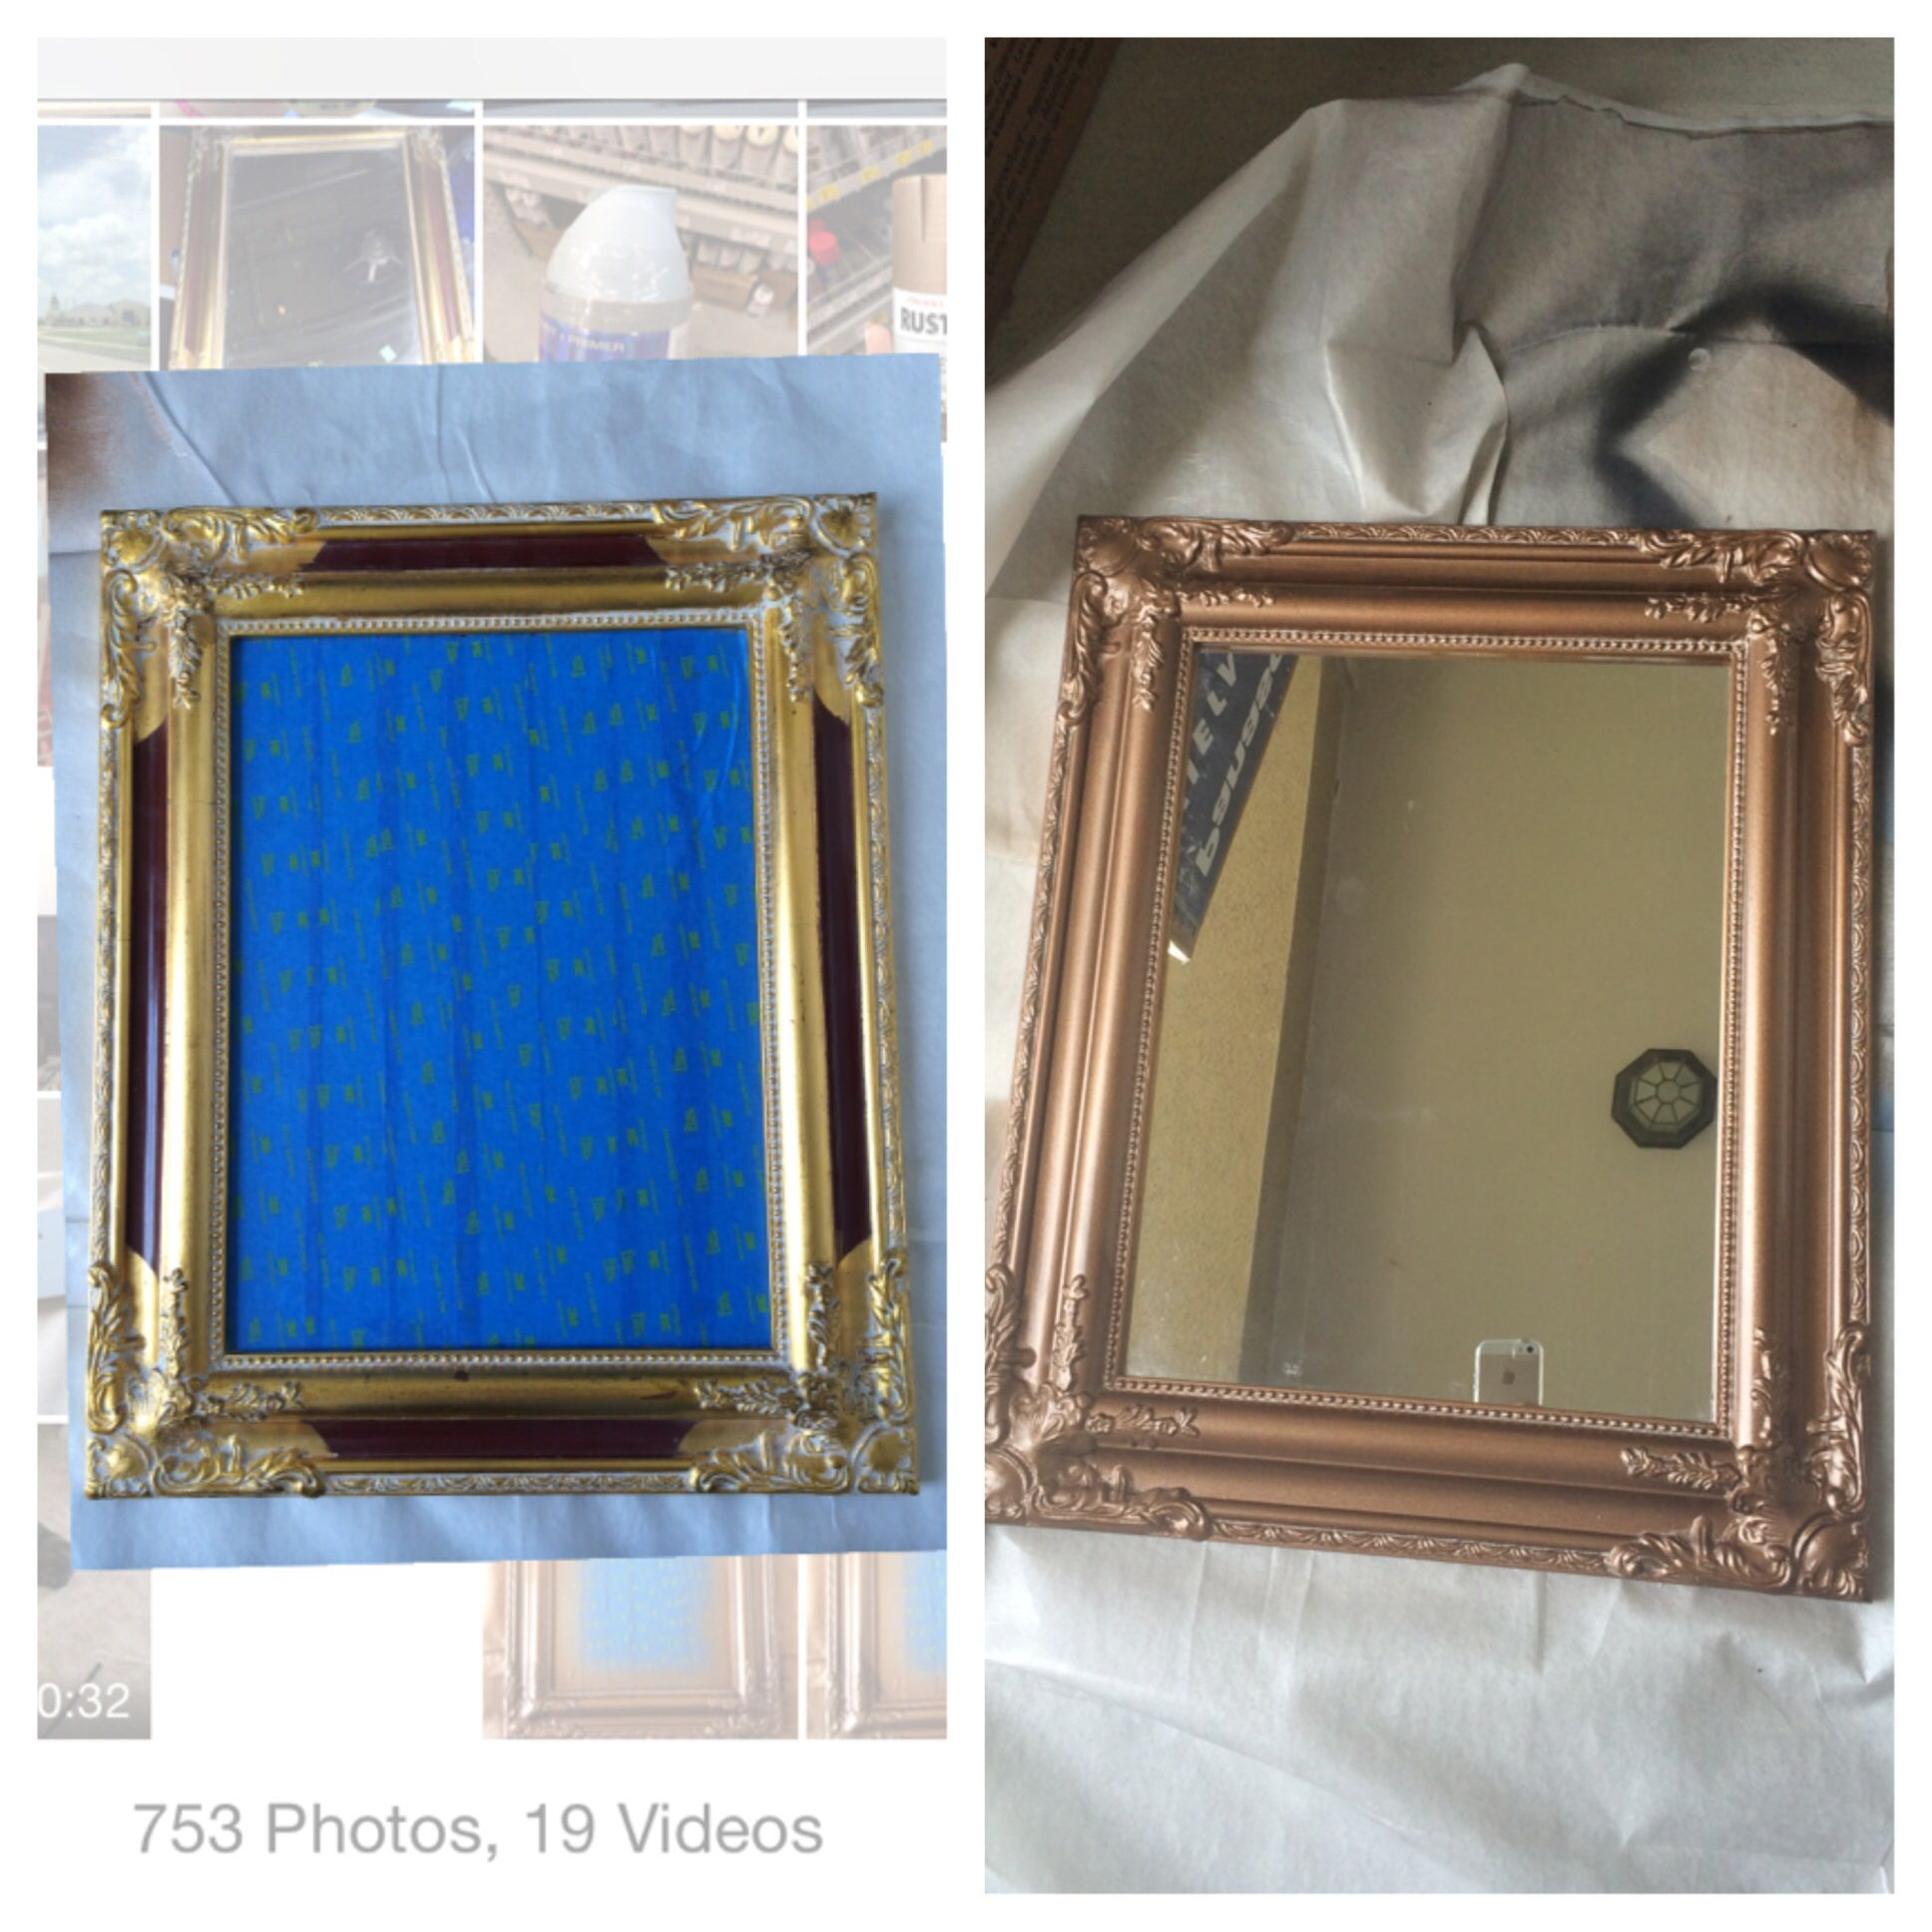 Elegant Mirror I Picked Up At Goodwill For Only $599